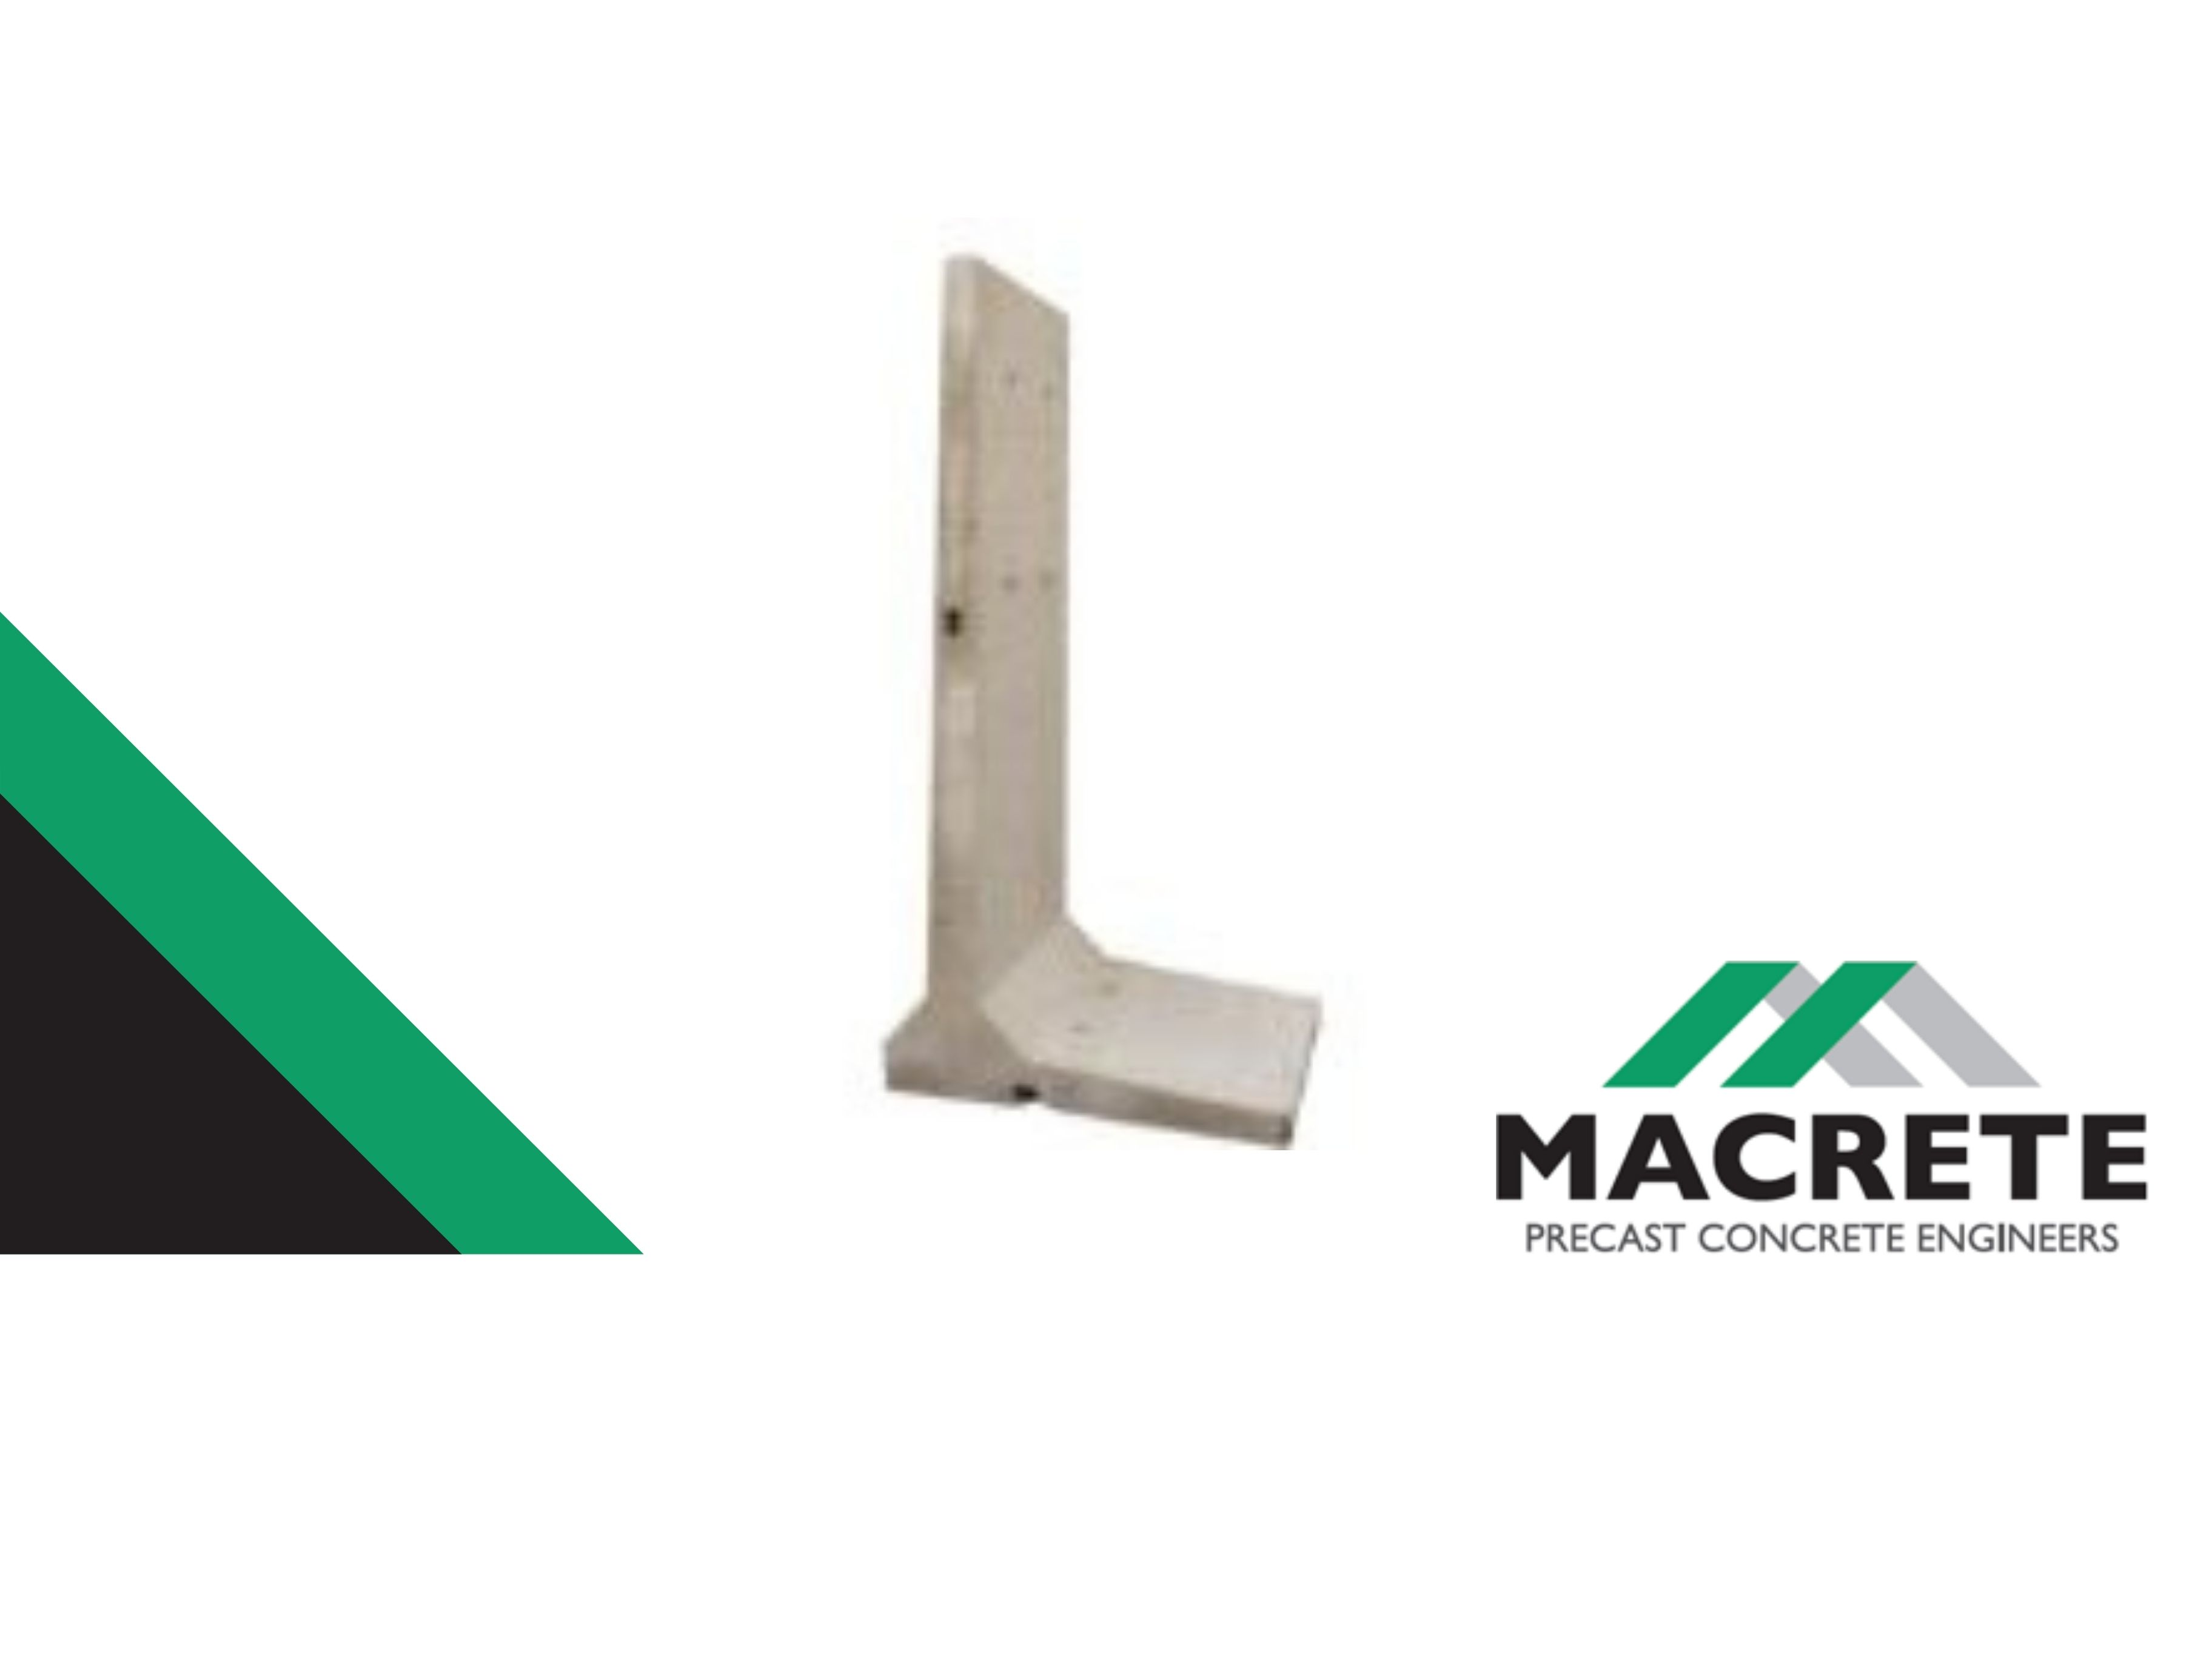 Macrete 3.0m Single Loading Retaining Wall